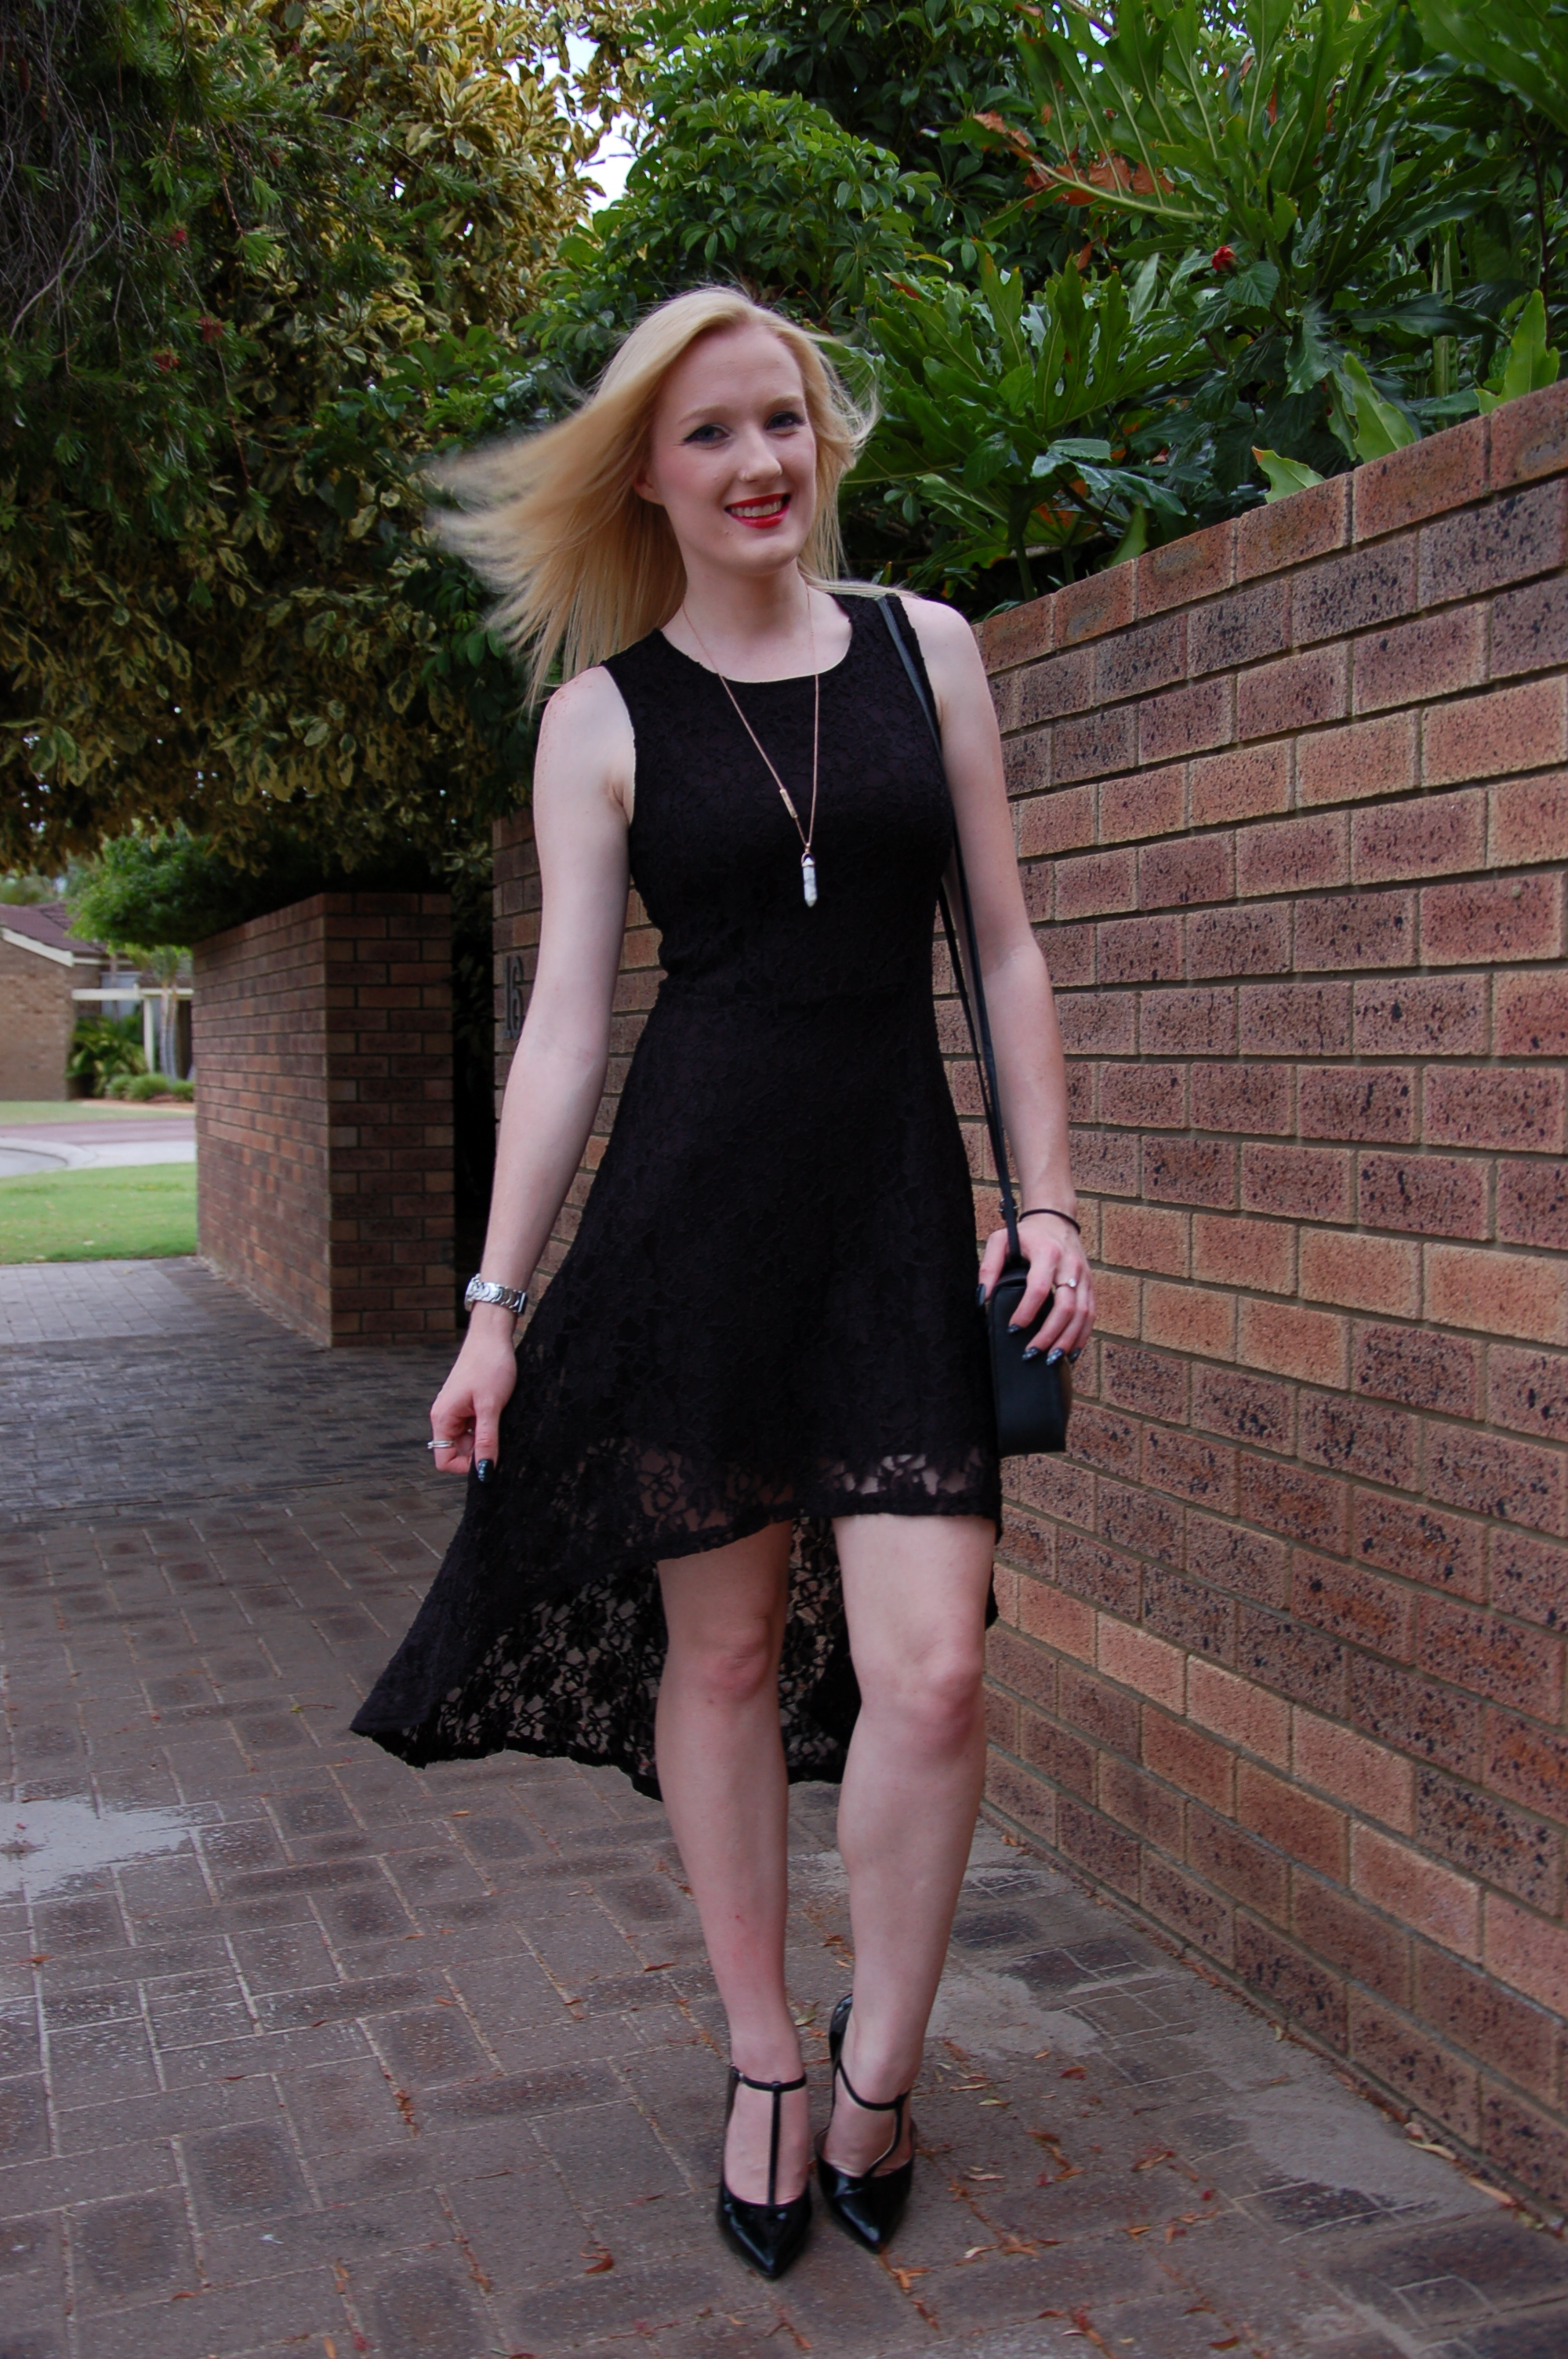 c7205d65f0 Black lace dress and Samantha Wills rose gold necklace